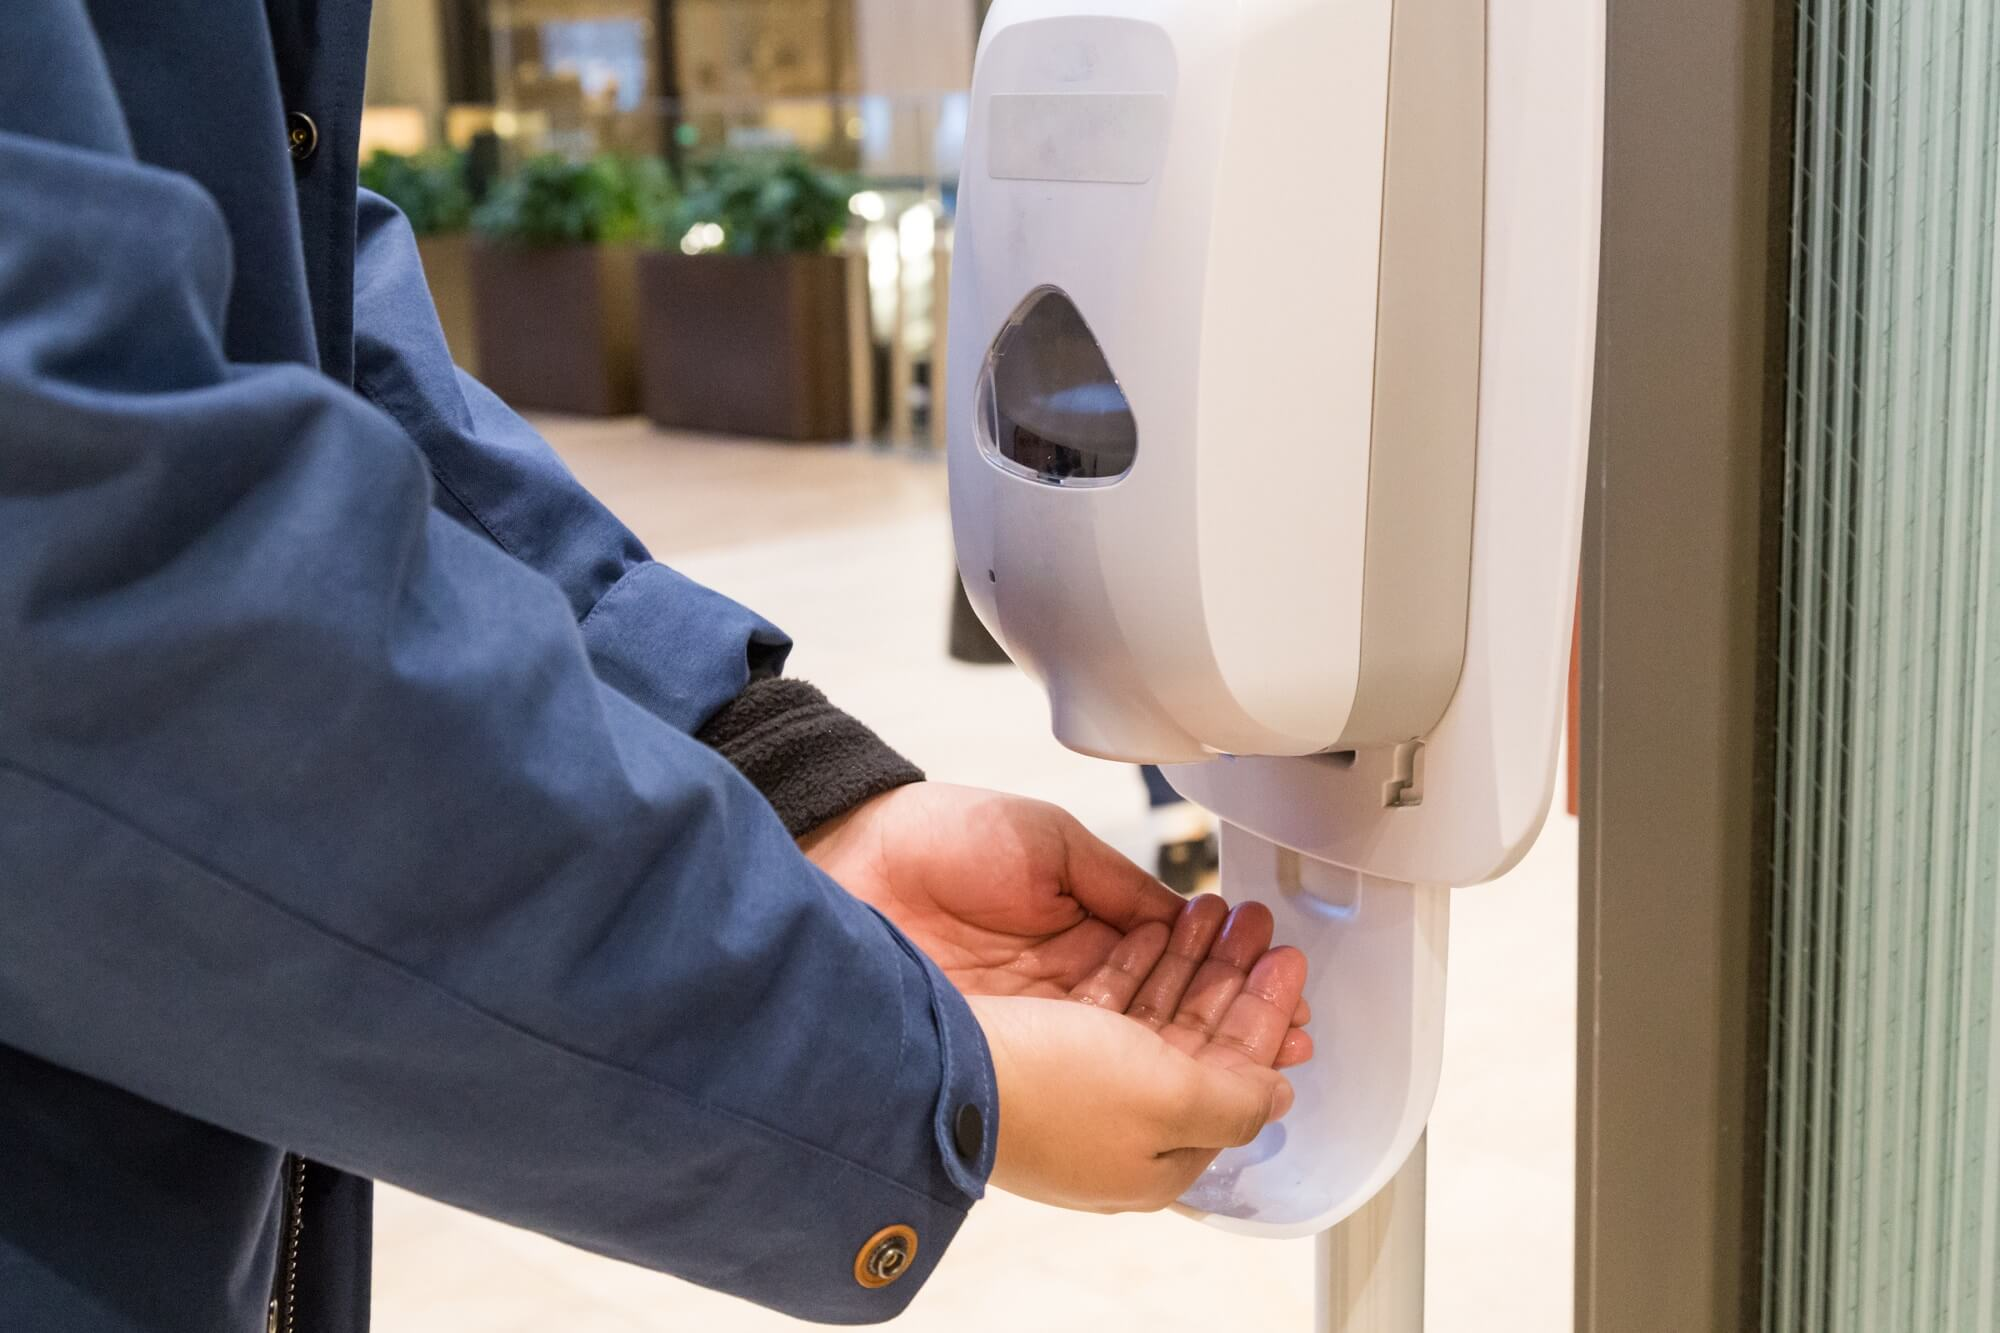 A person cleaning hand with anti-bacterial hand disinfectant sanitizer dispenser at work